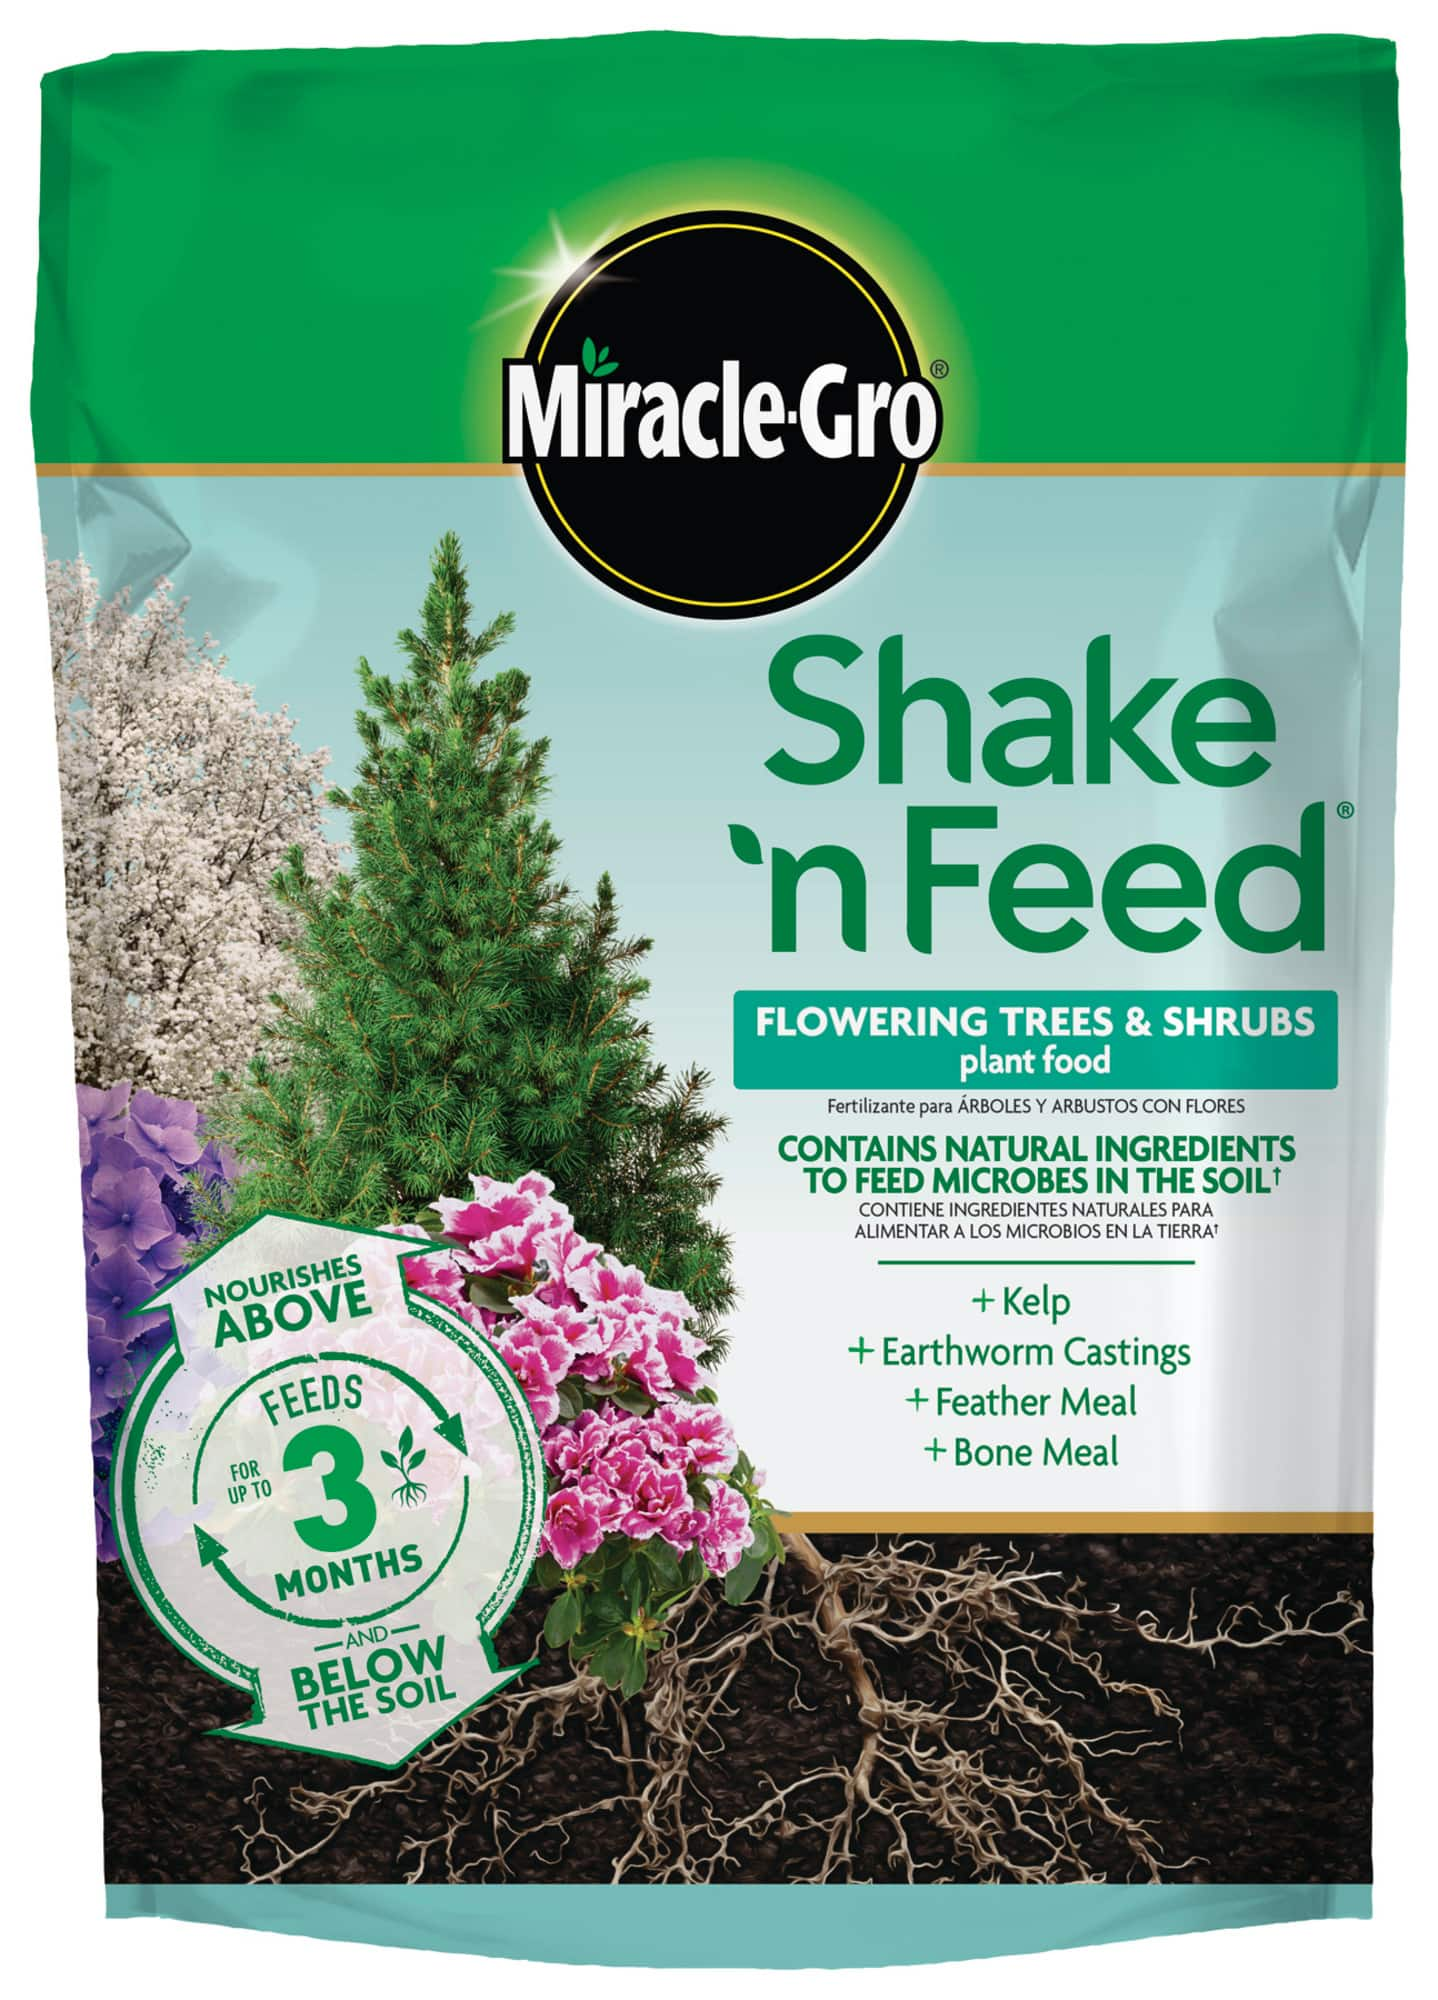 Miracle Gro Shake 'N Feed Flowering Trees and Shrubs Plant Food, 8 lb. 85% off: $4.60 @ Walmart B&M YMMY